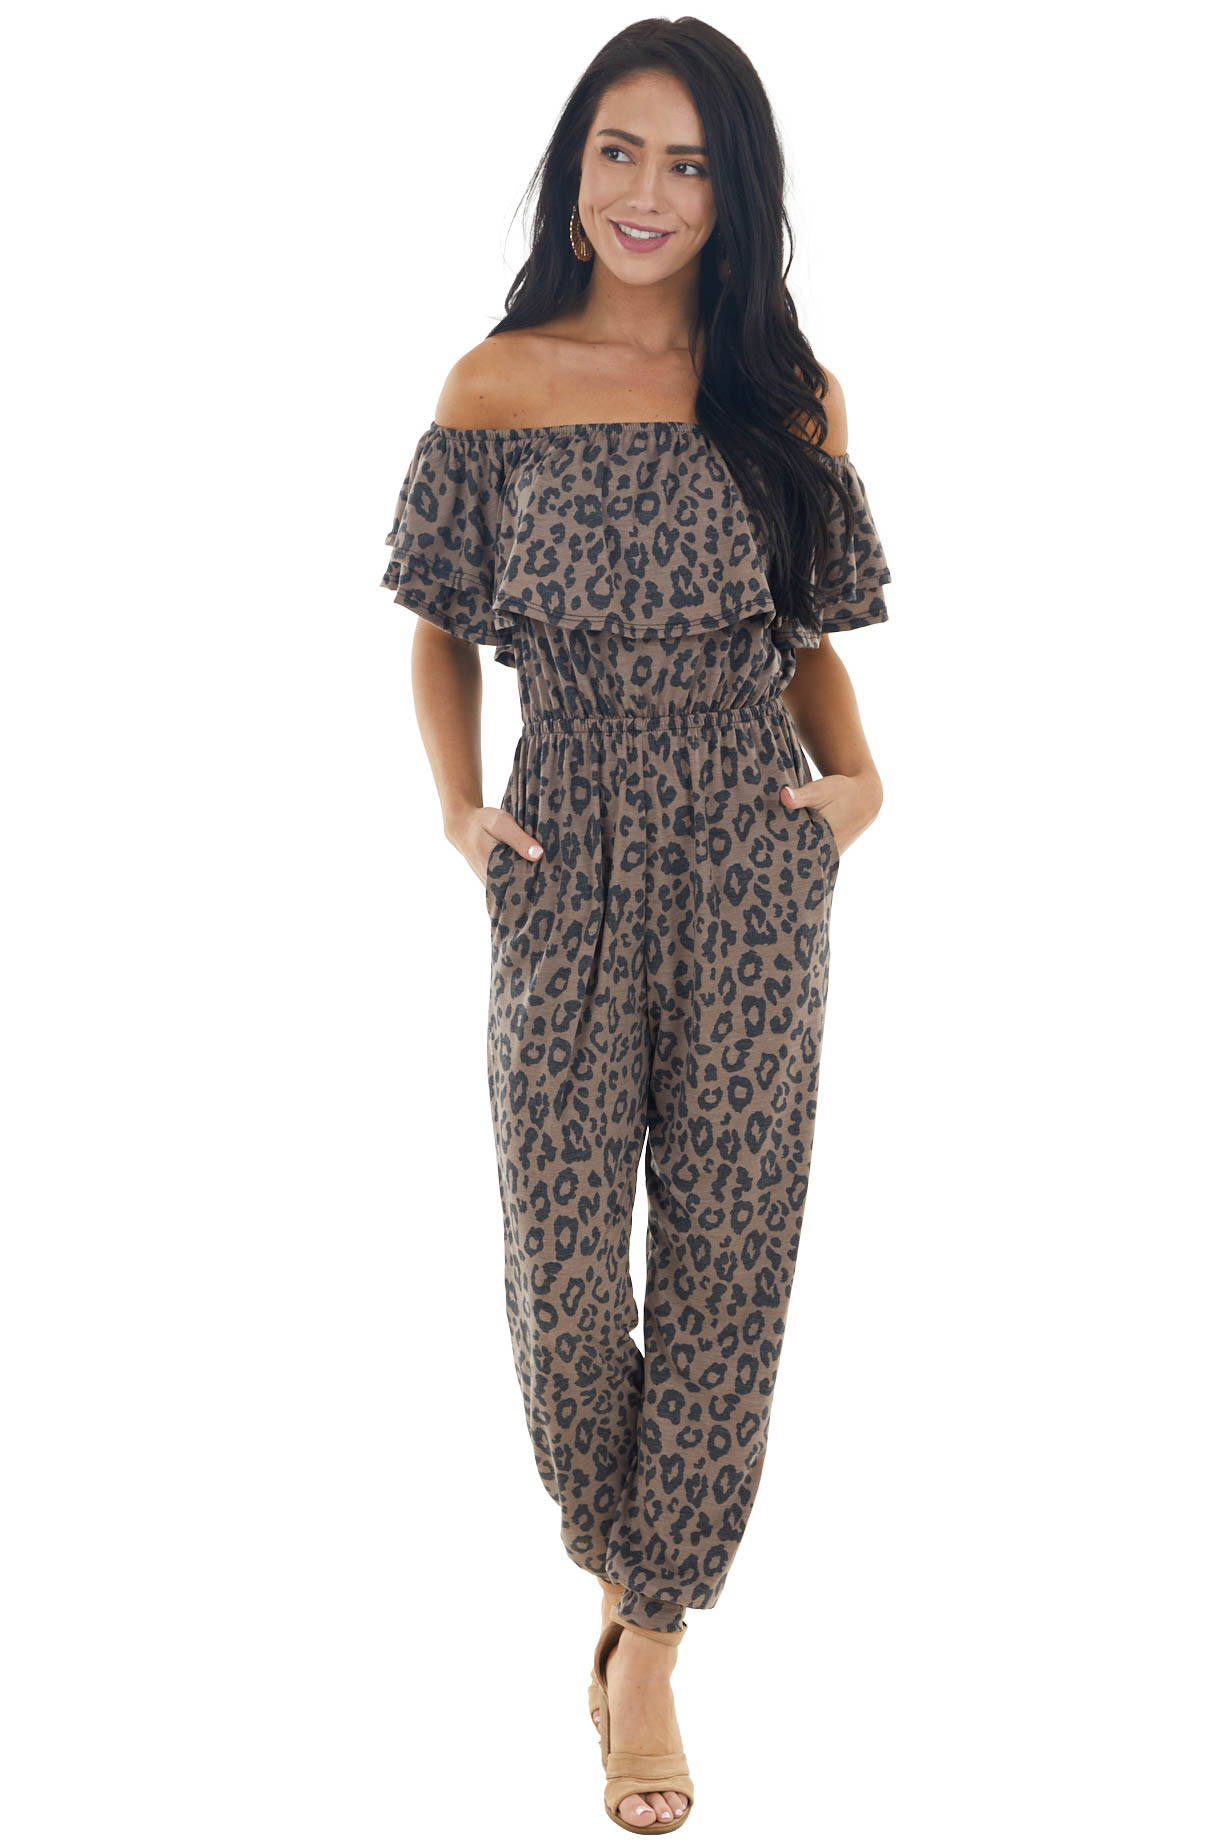 Cocoa and Charcoal Leopard Print Knit Jumpsuit with Pockets